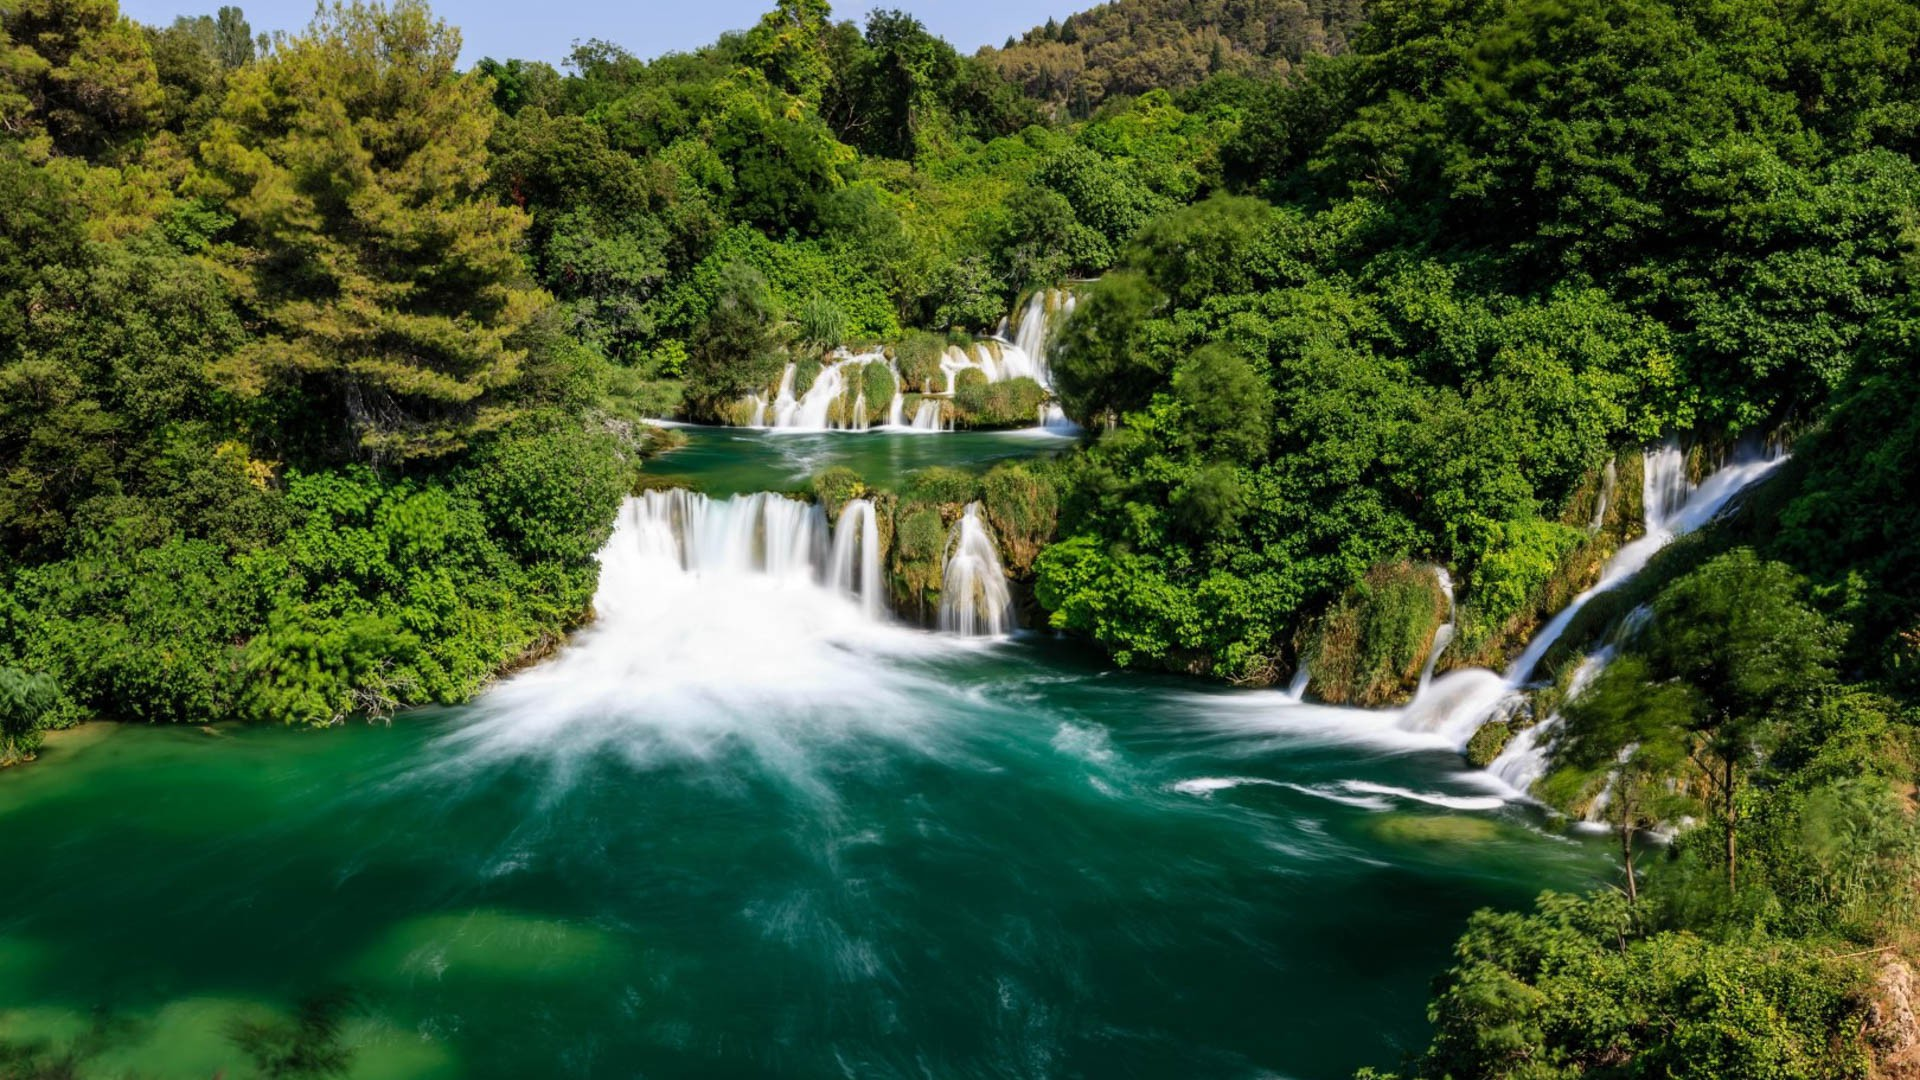 Krka Waterfalls - Adriatic Sea | Croatia Cruise Croatia Cruise